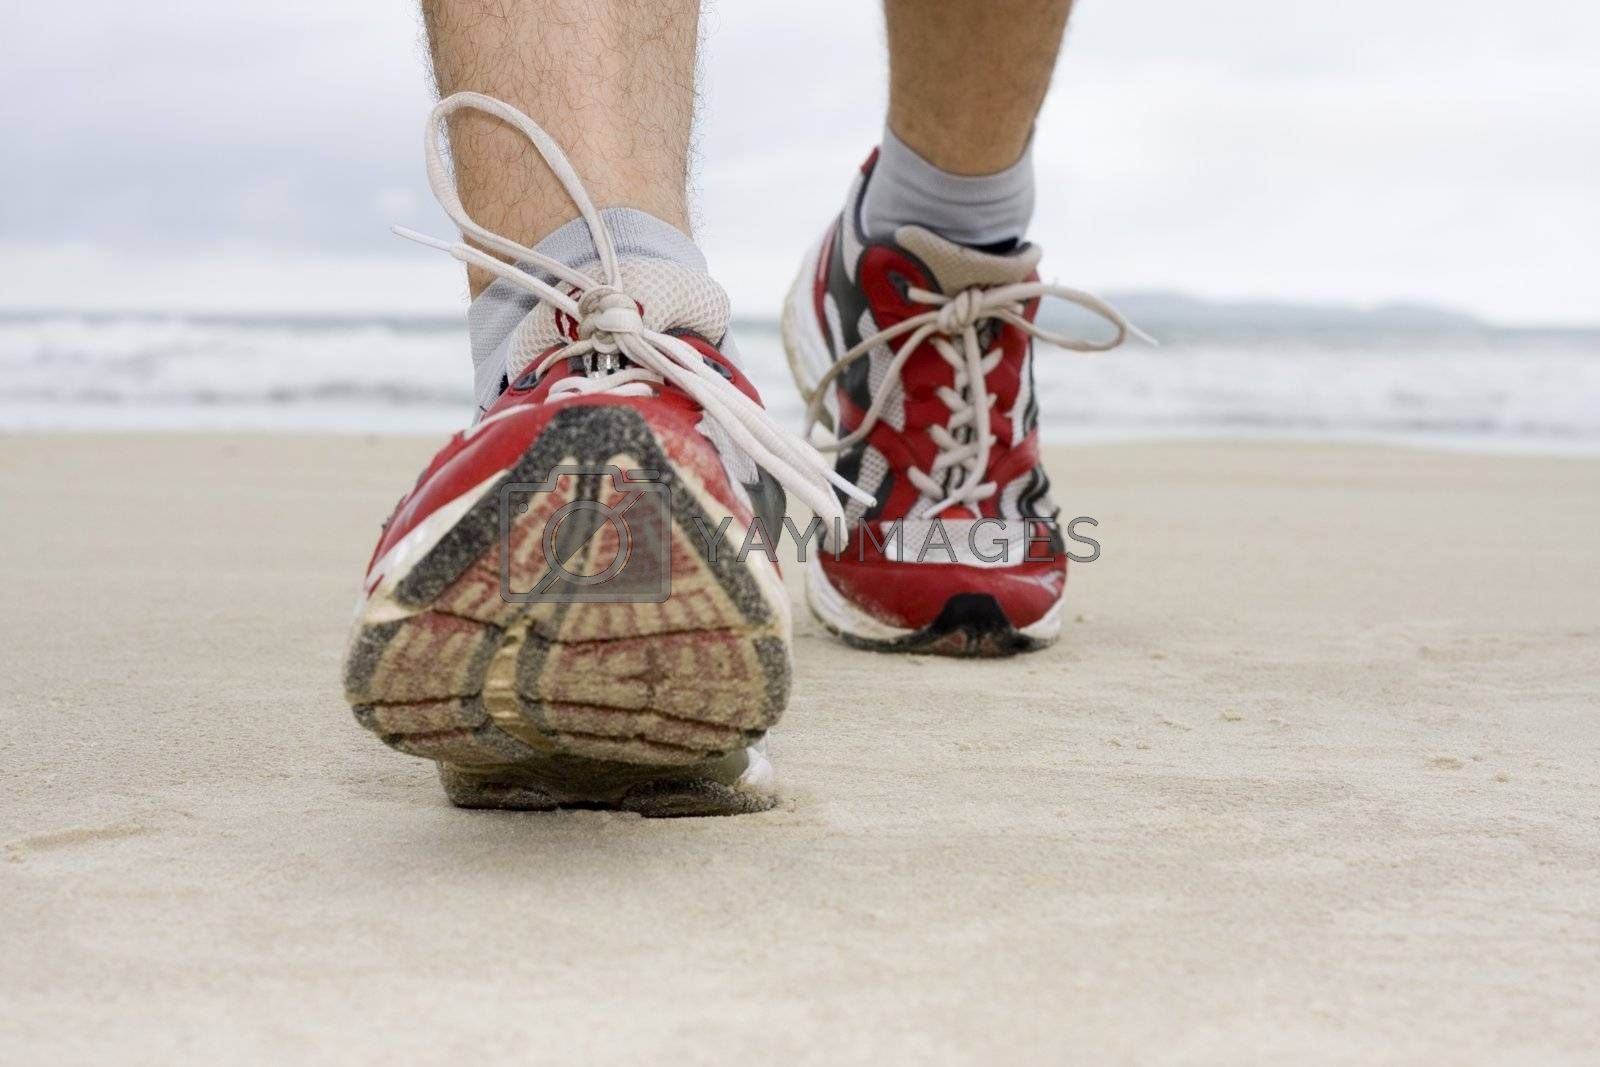 Royalty free image of Feet of man jogging on a beach by ArtmannWitte